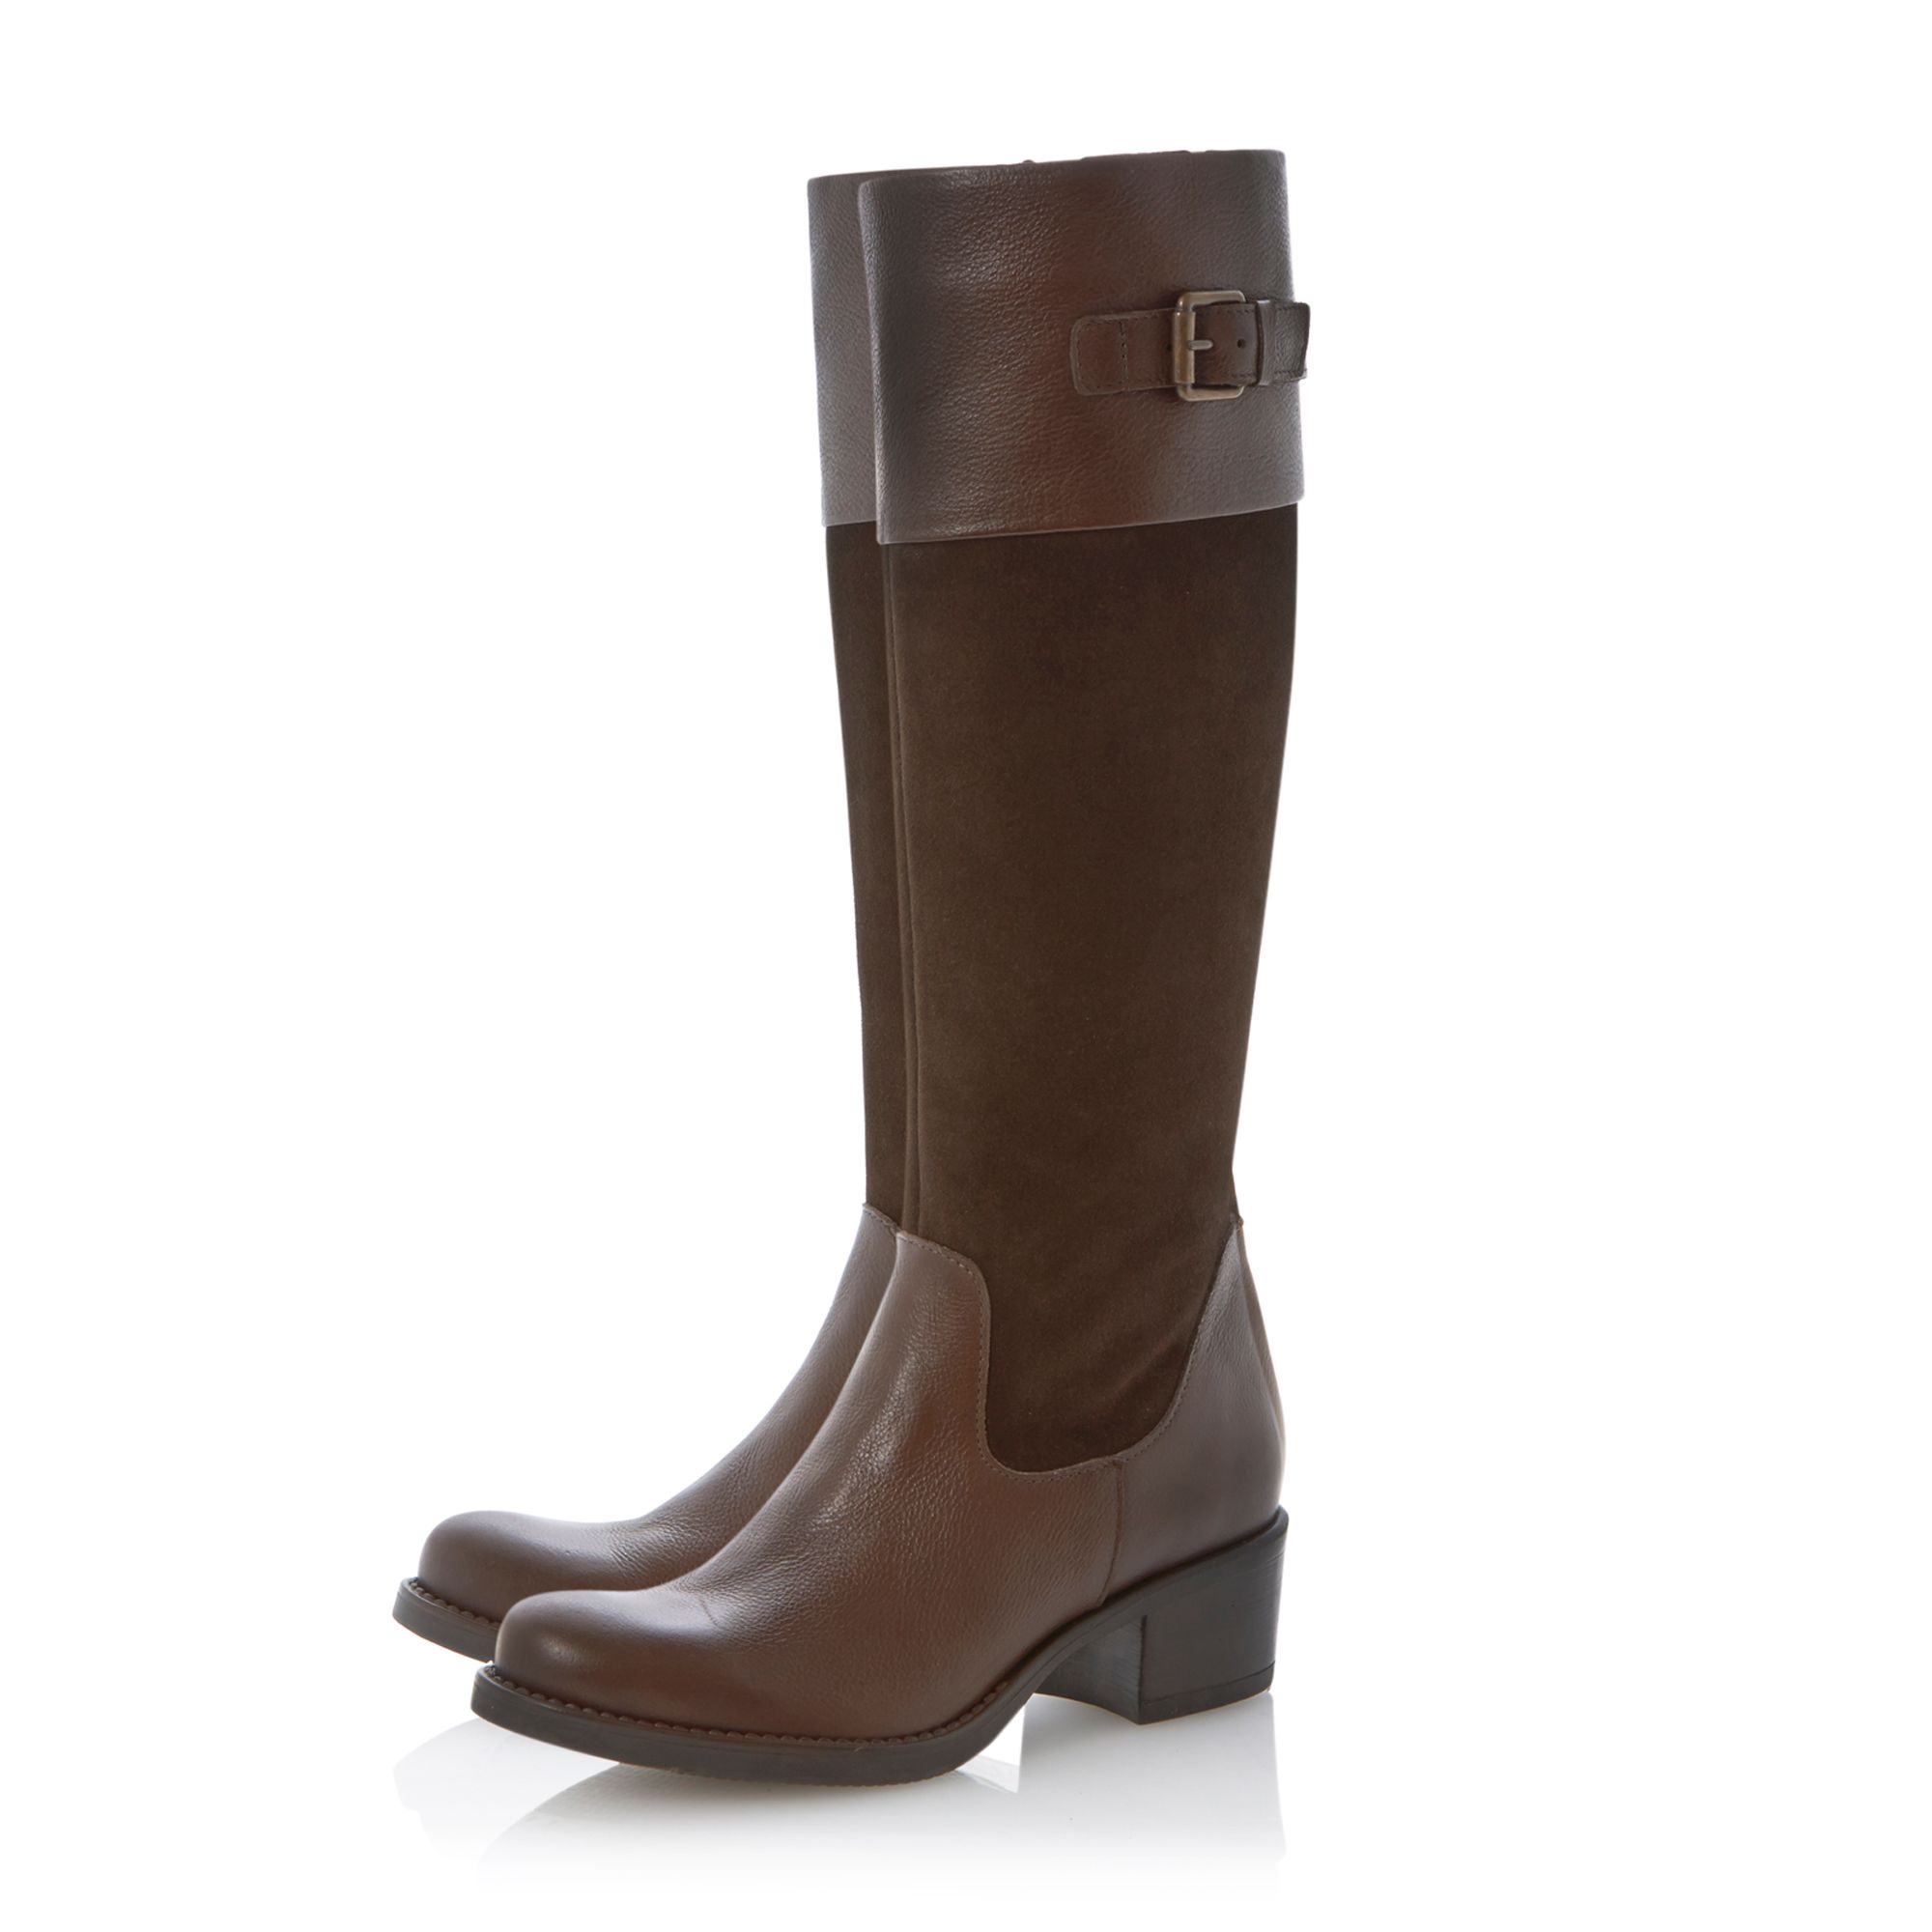 Tonical buckle twotone riding boots